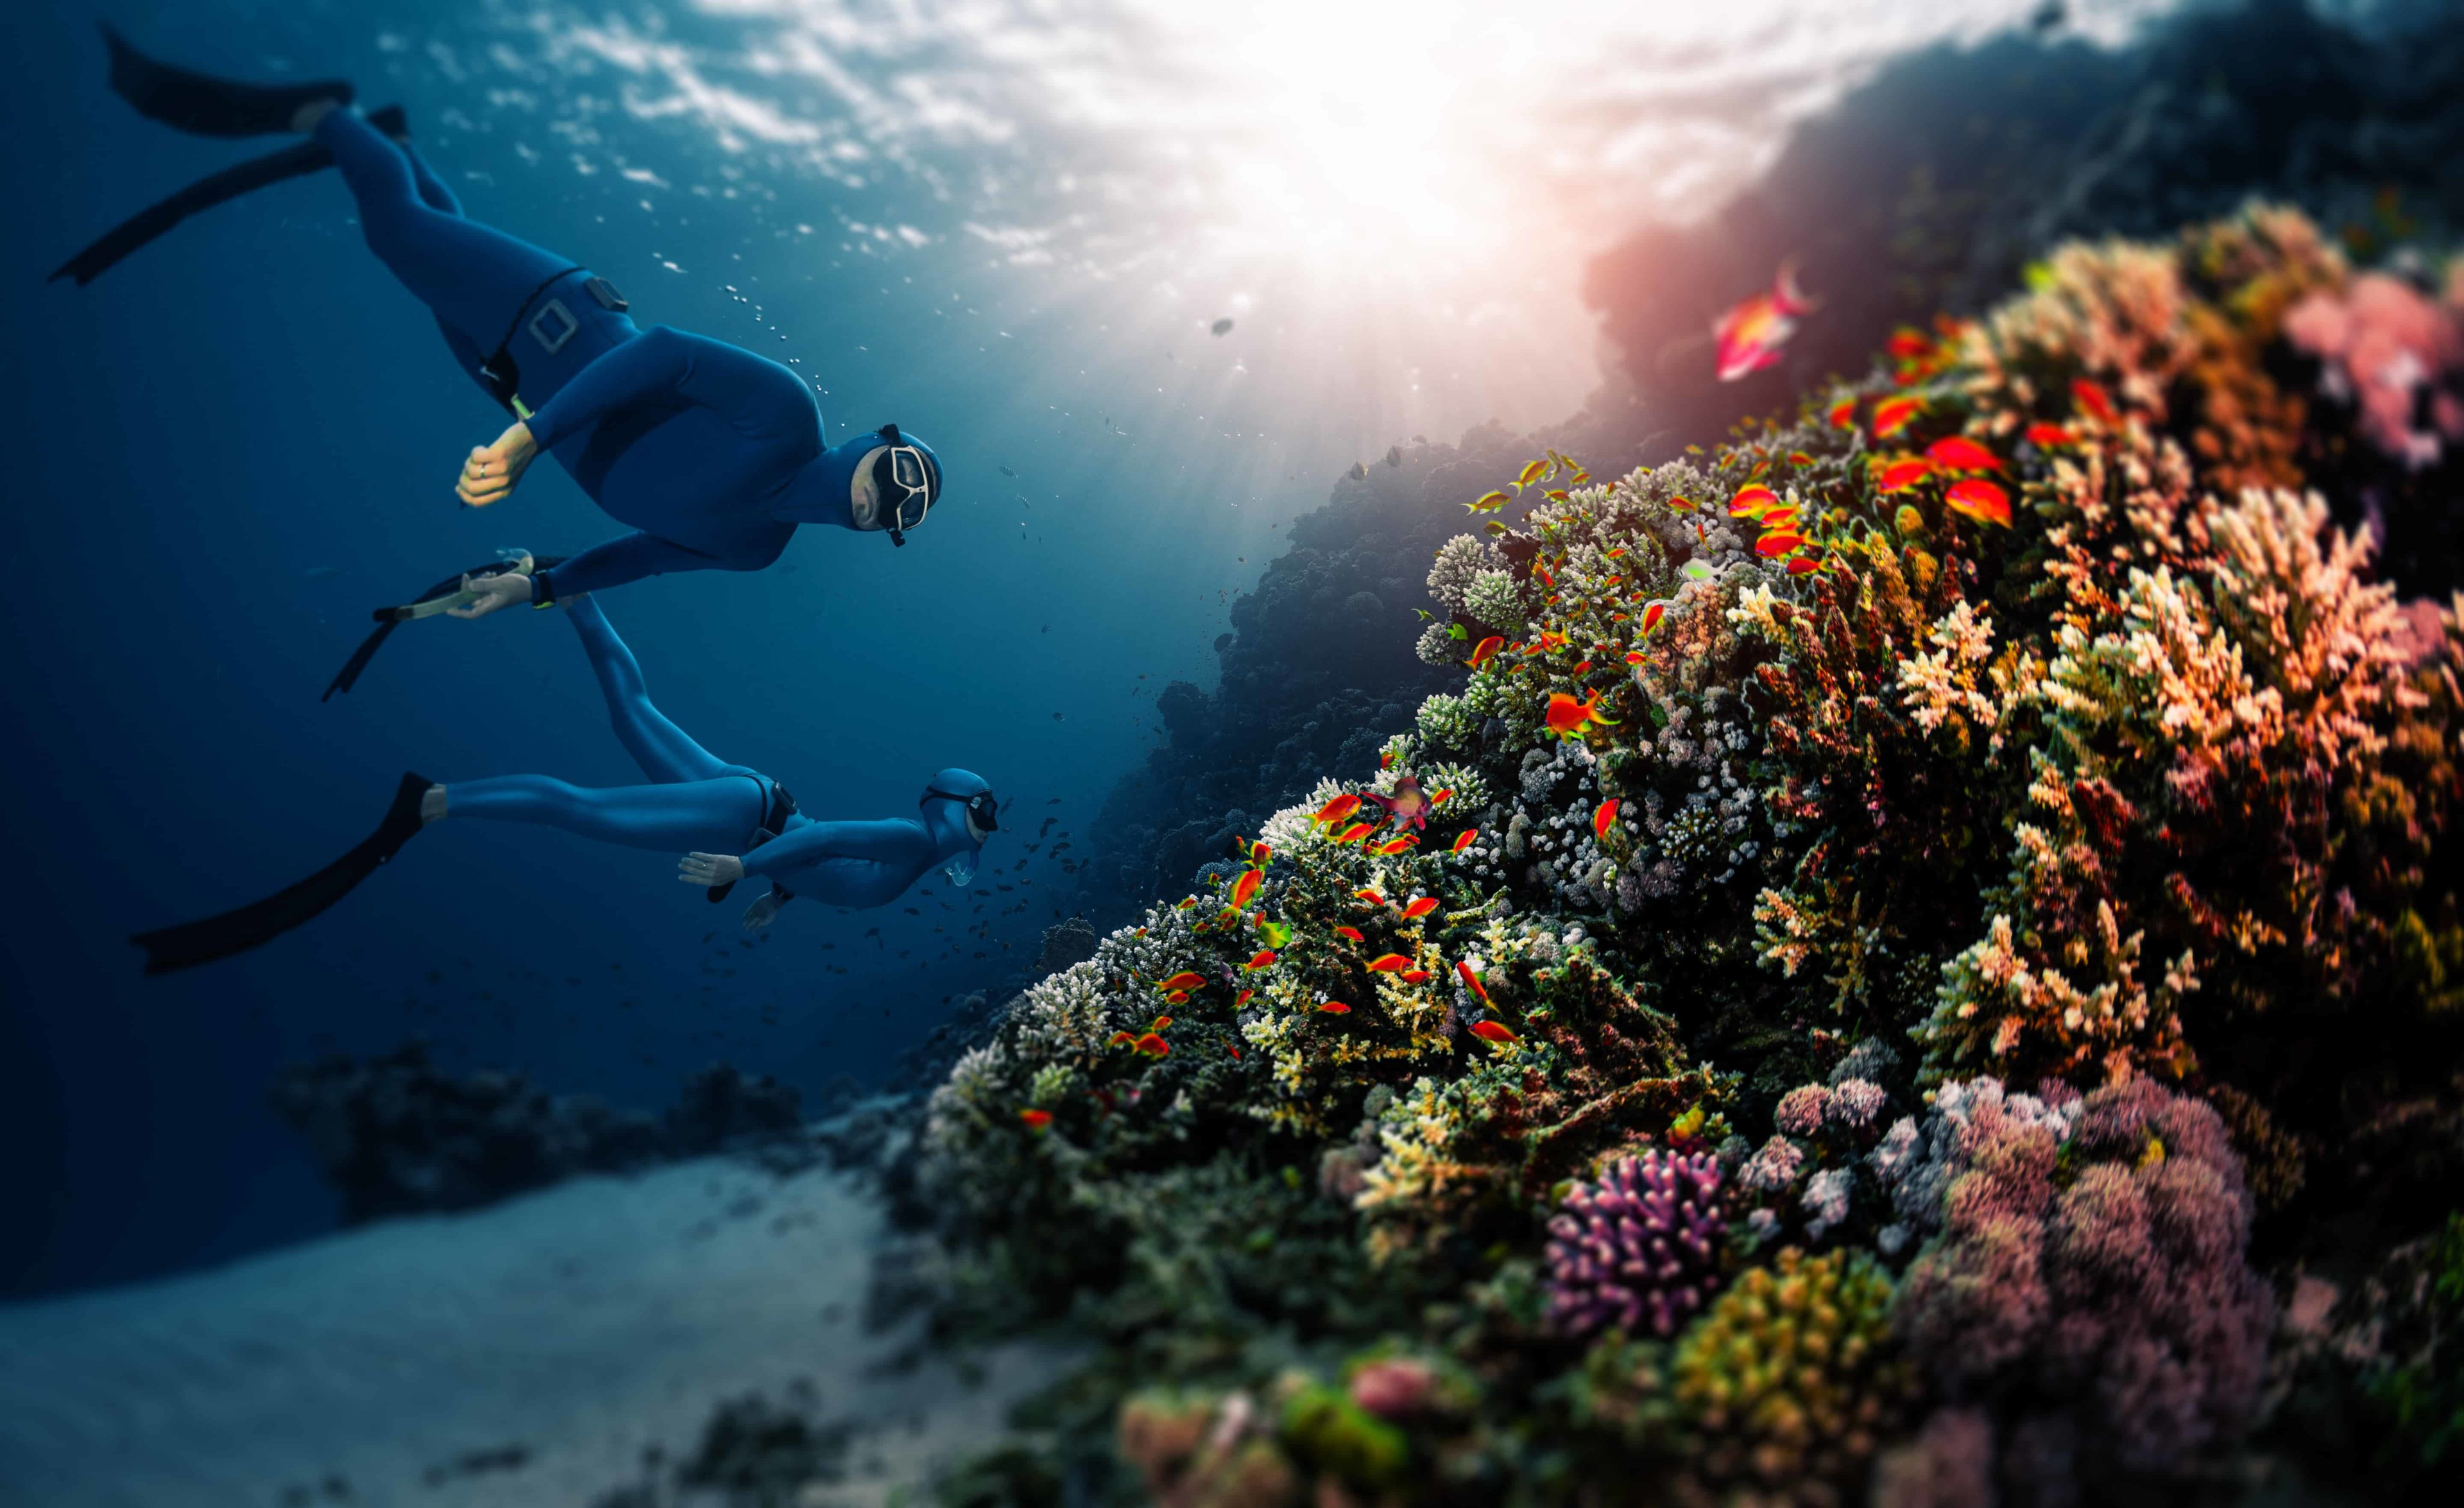 Two freedivers swim over the vivid coral reef